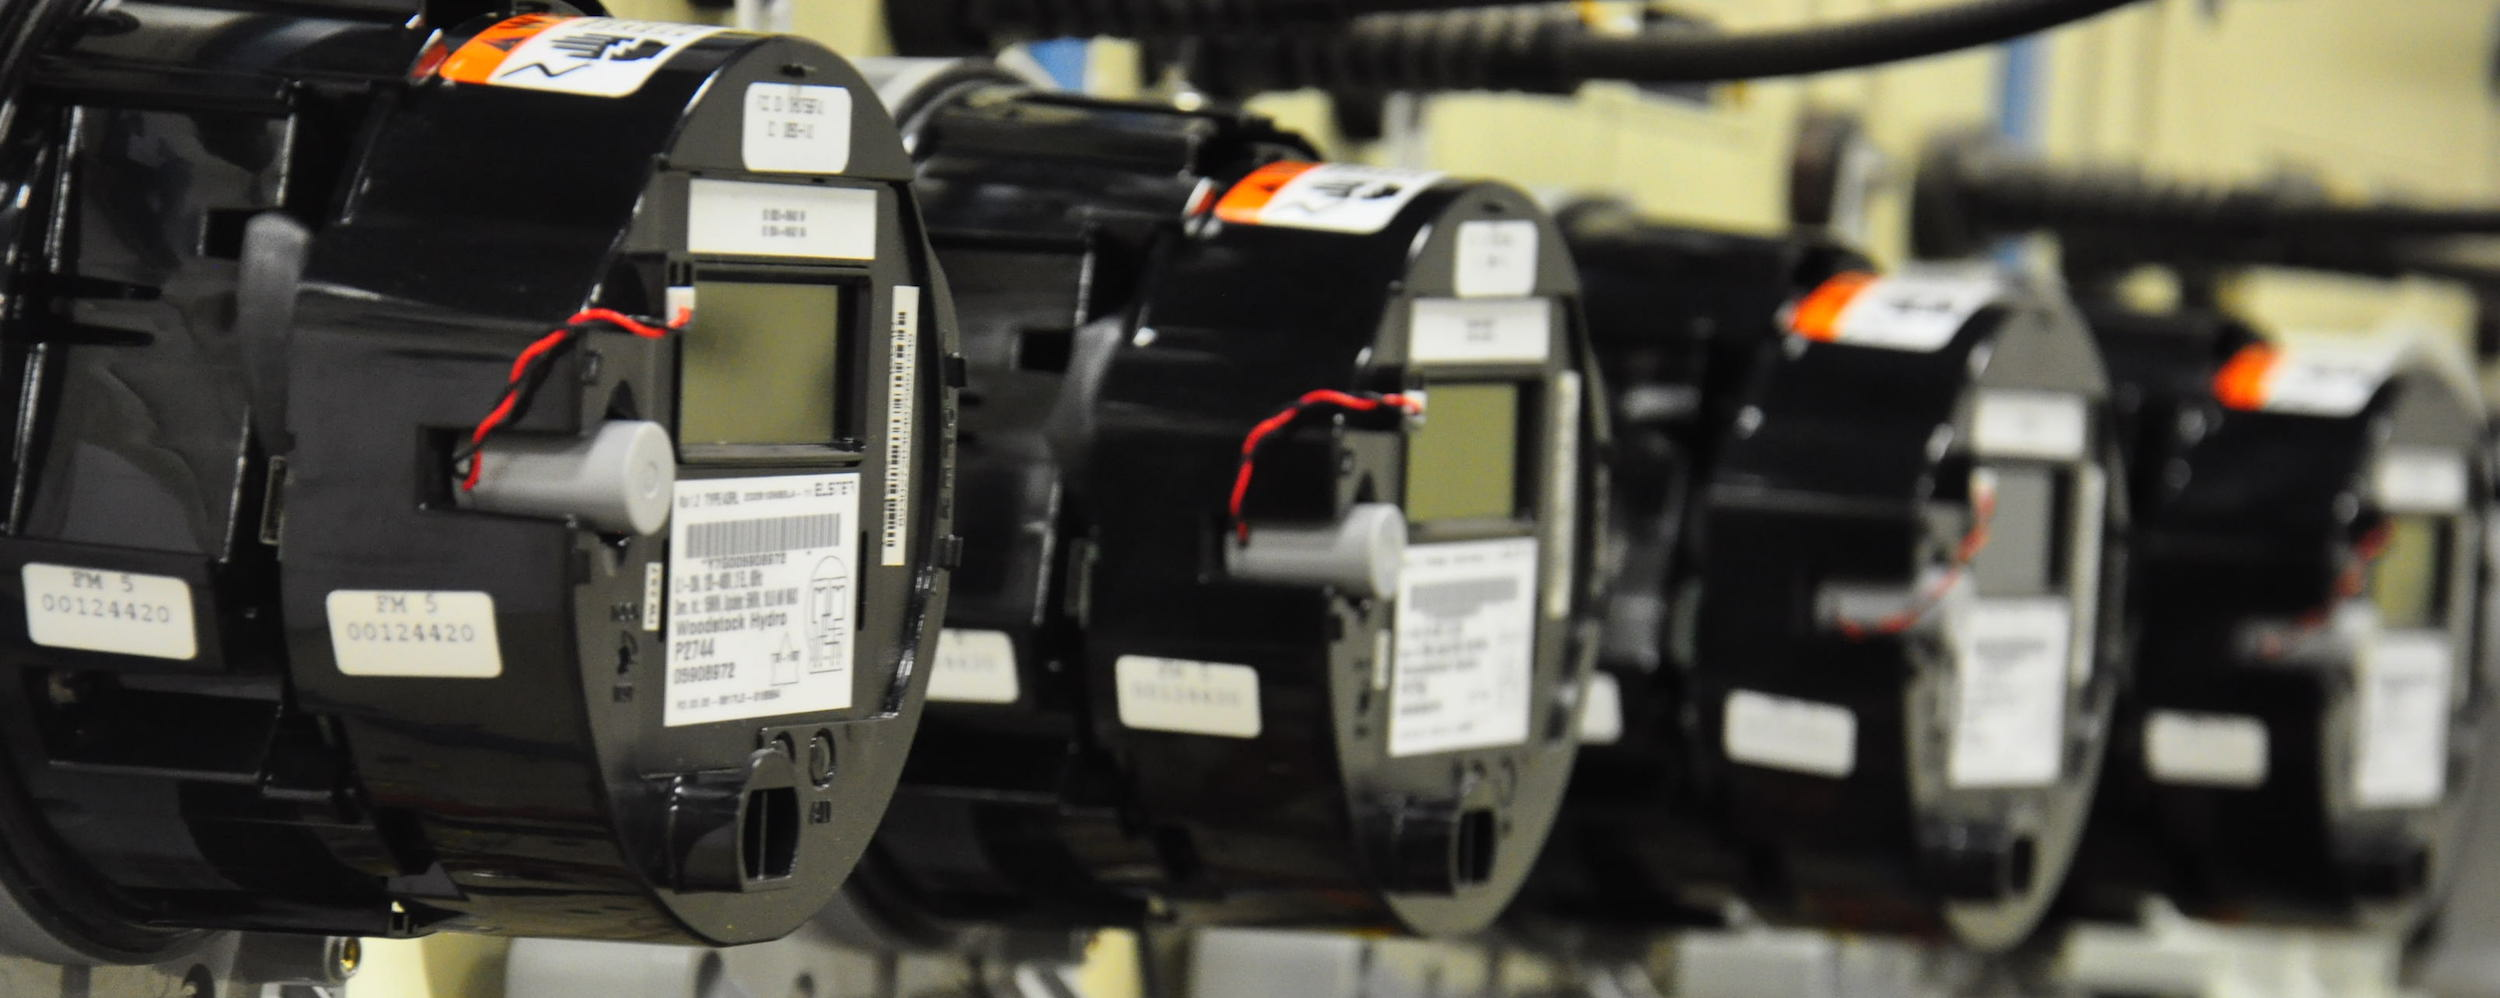 electric meter verification metering services